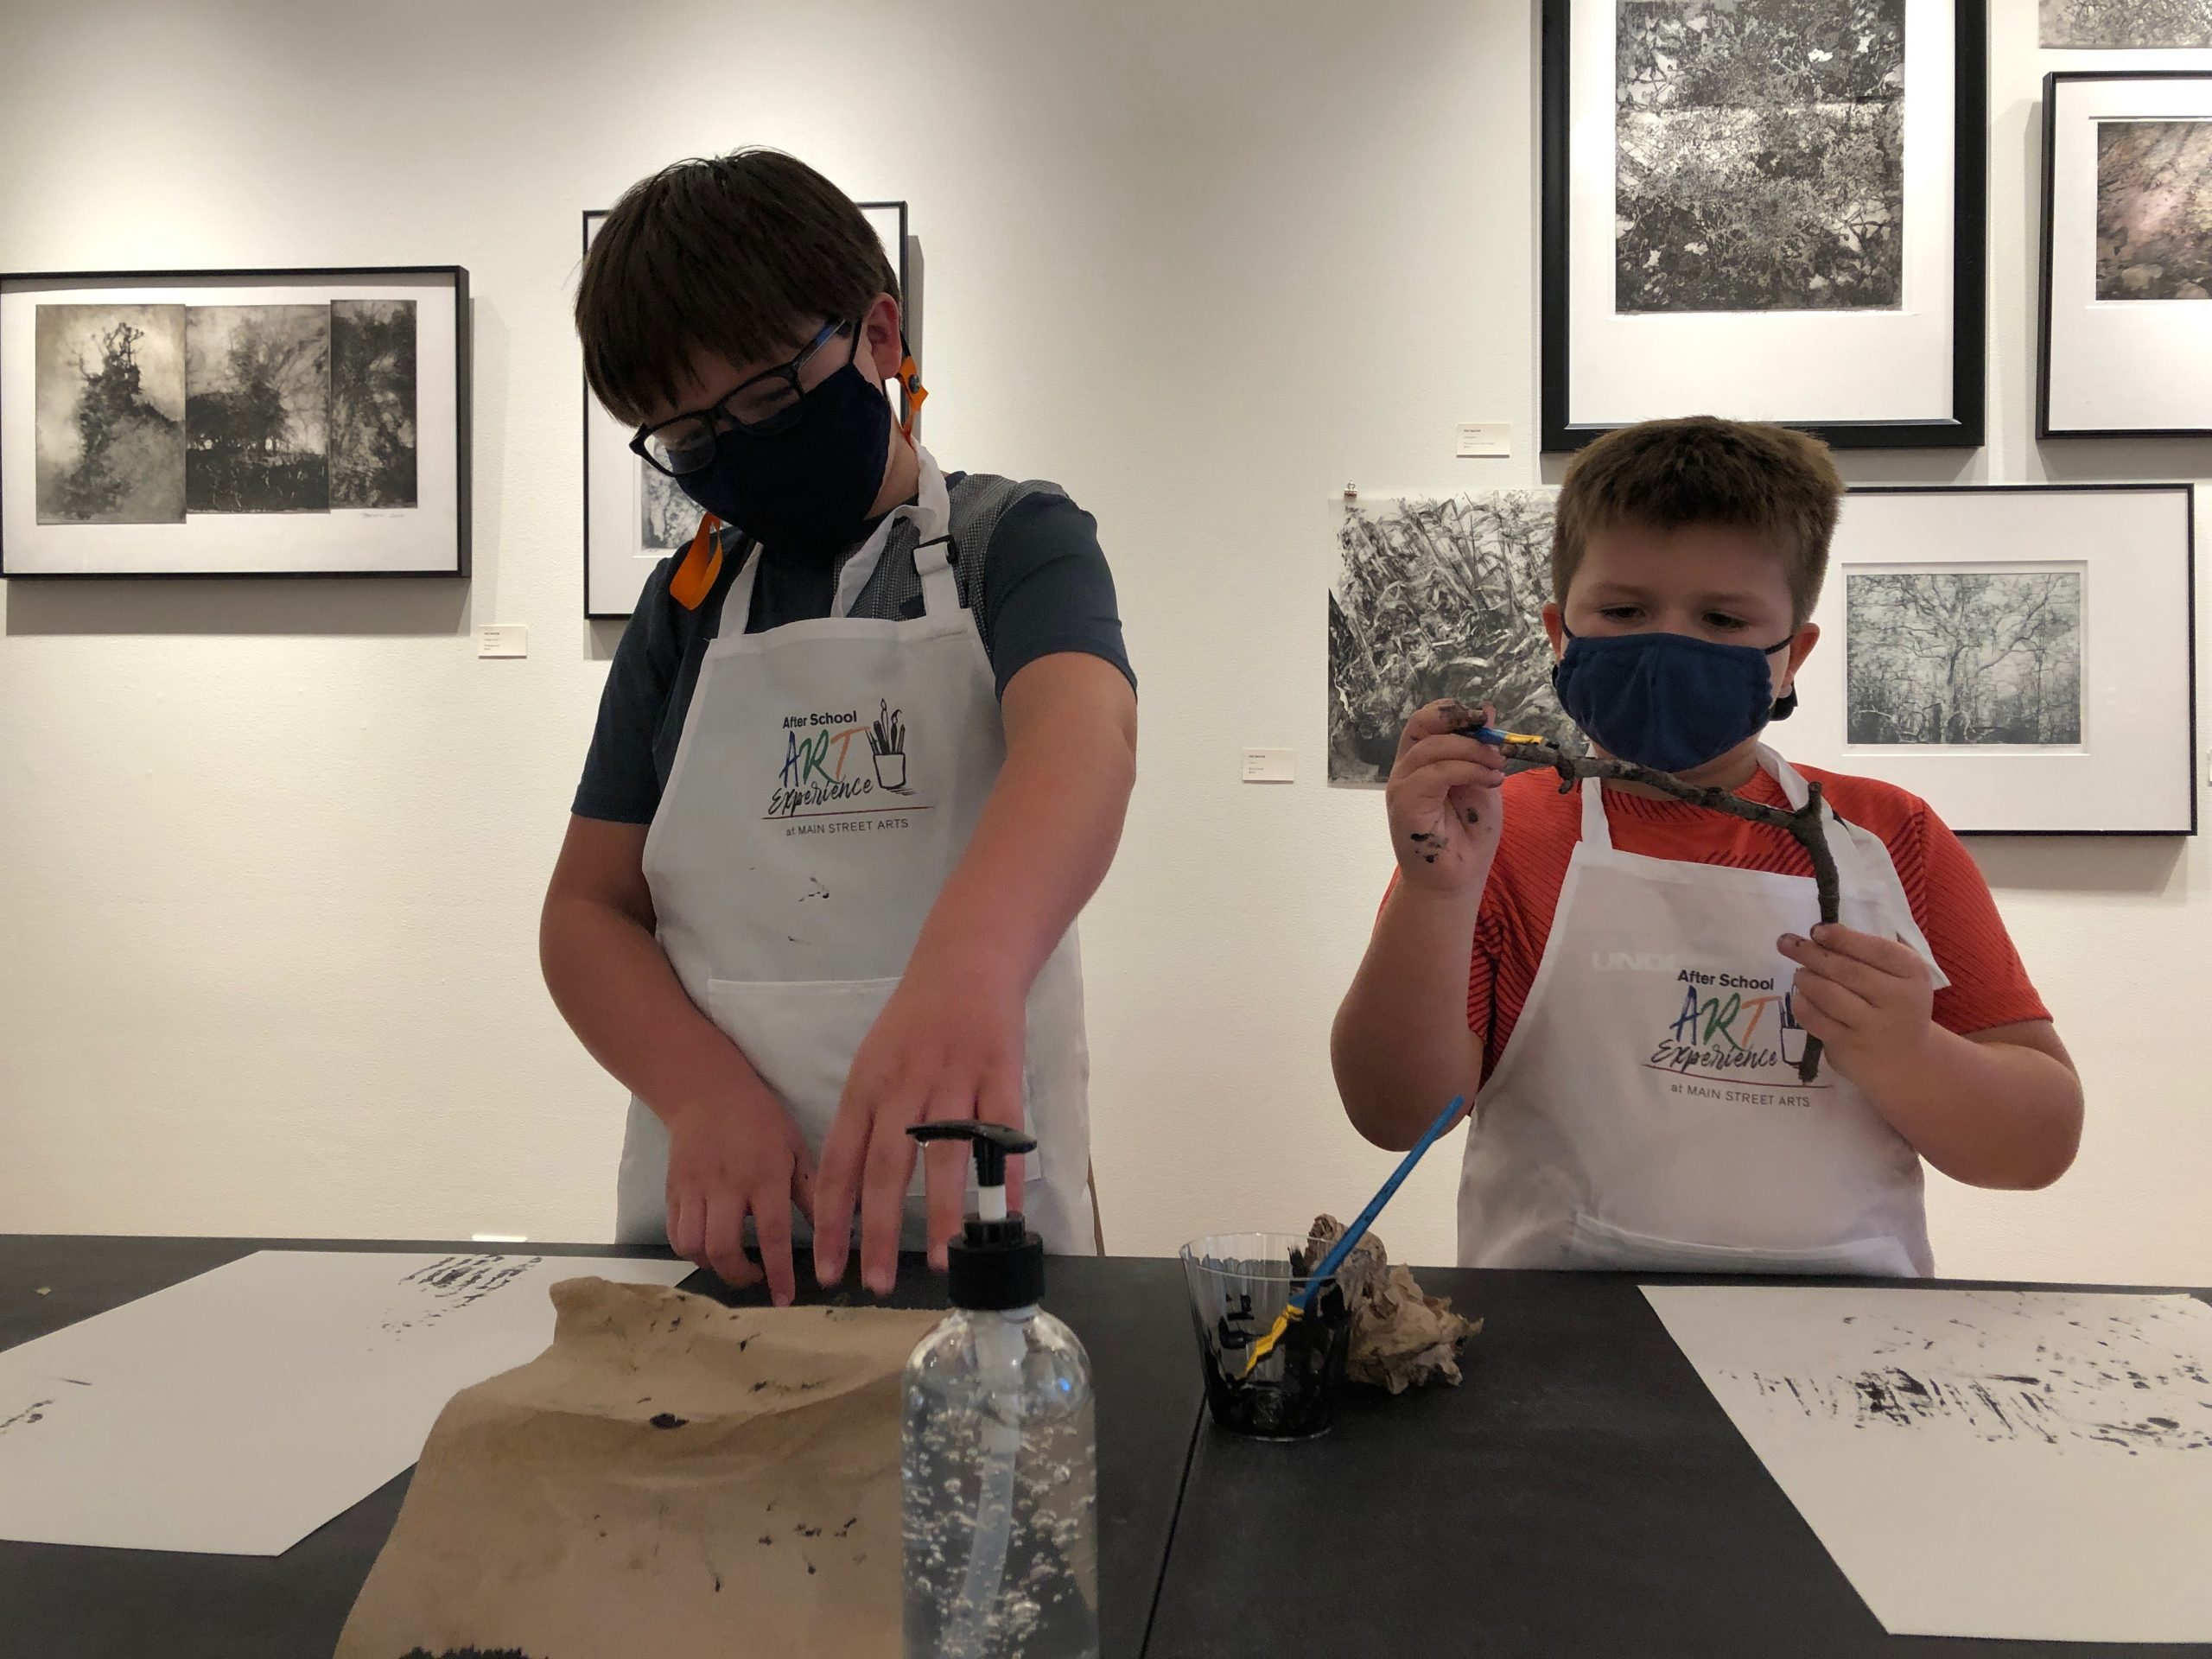 Two students making art in the gallery at Main Street Arts